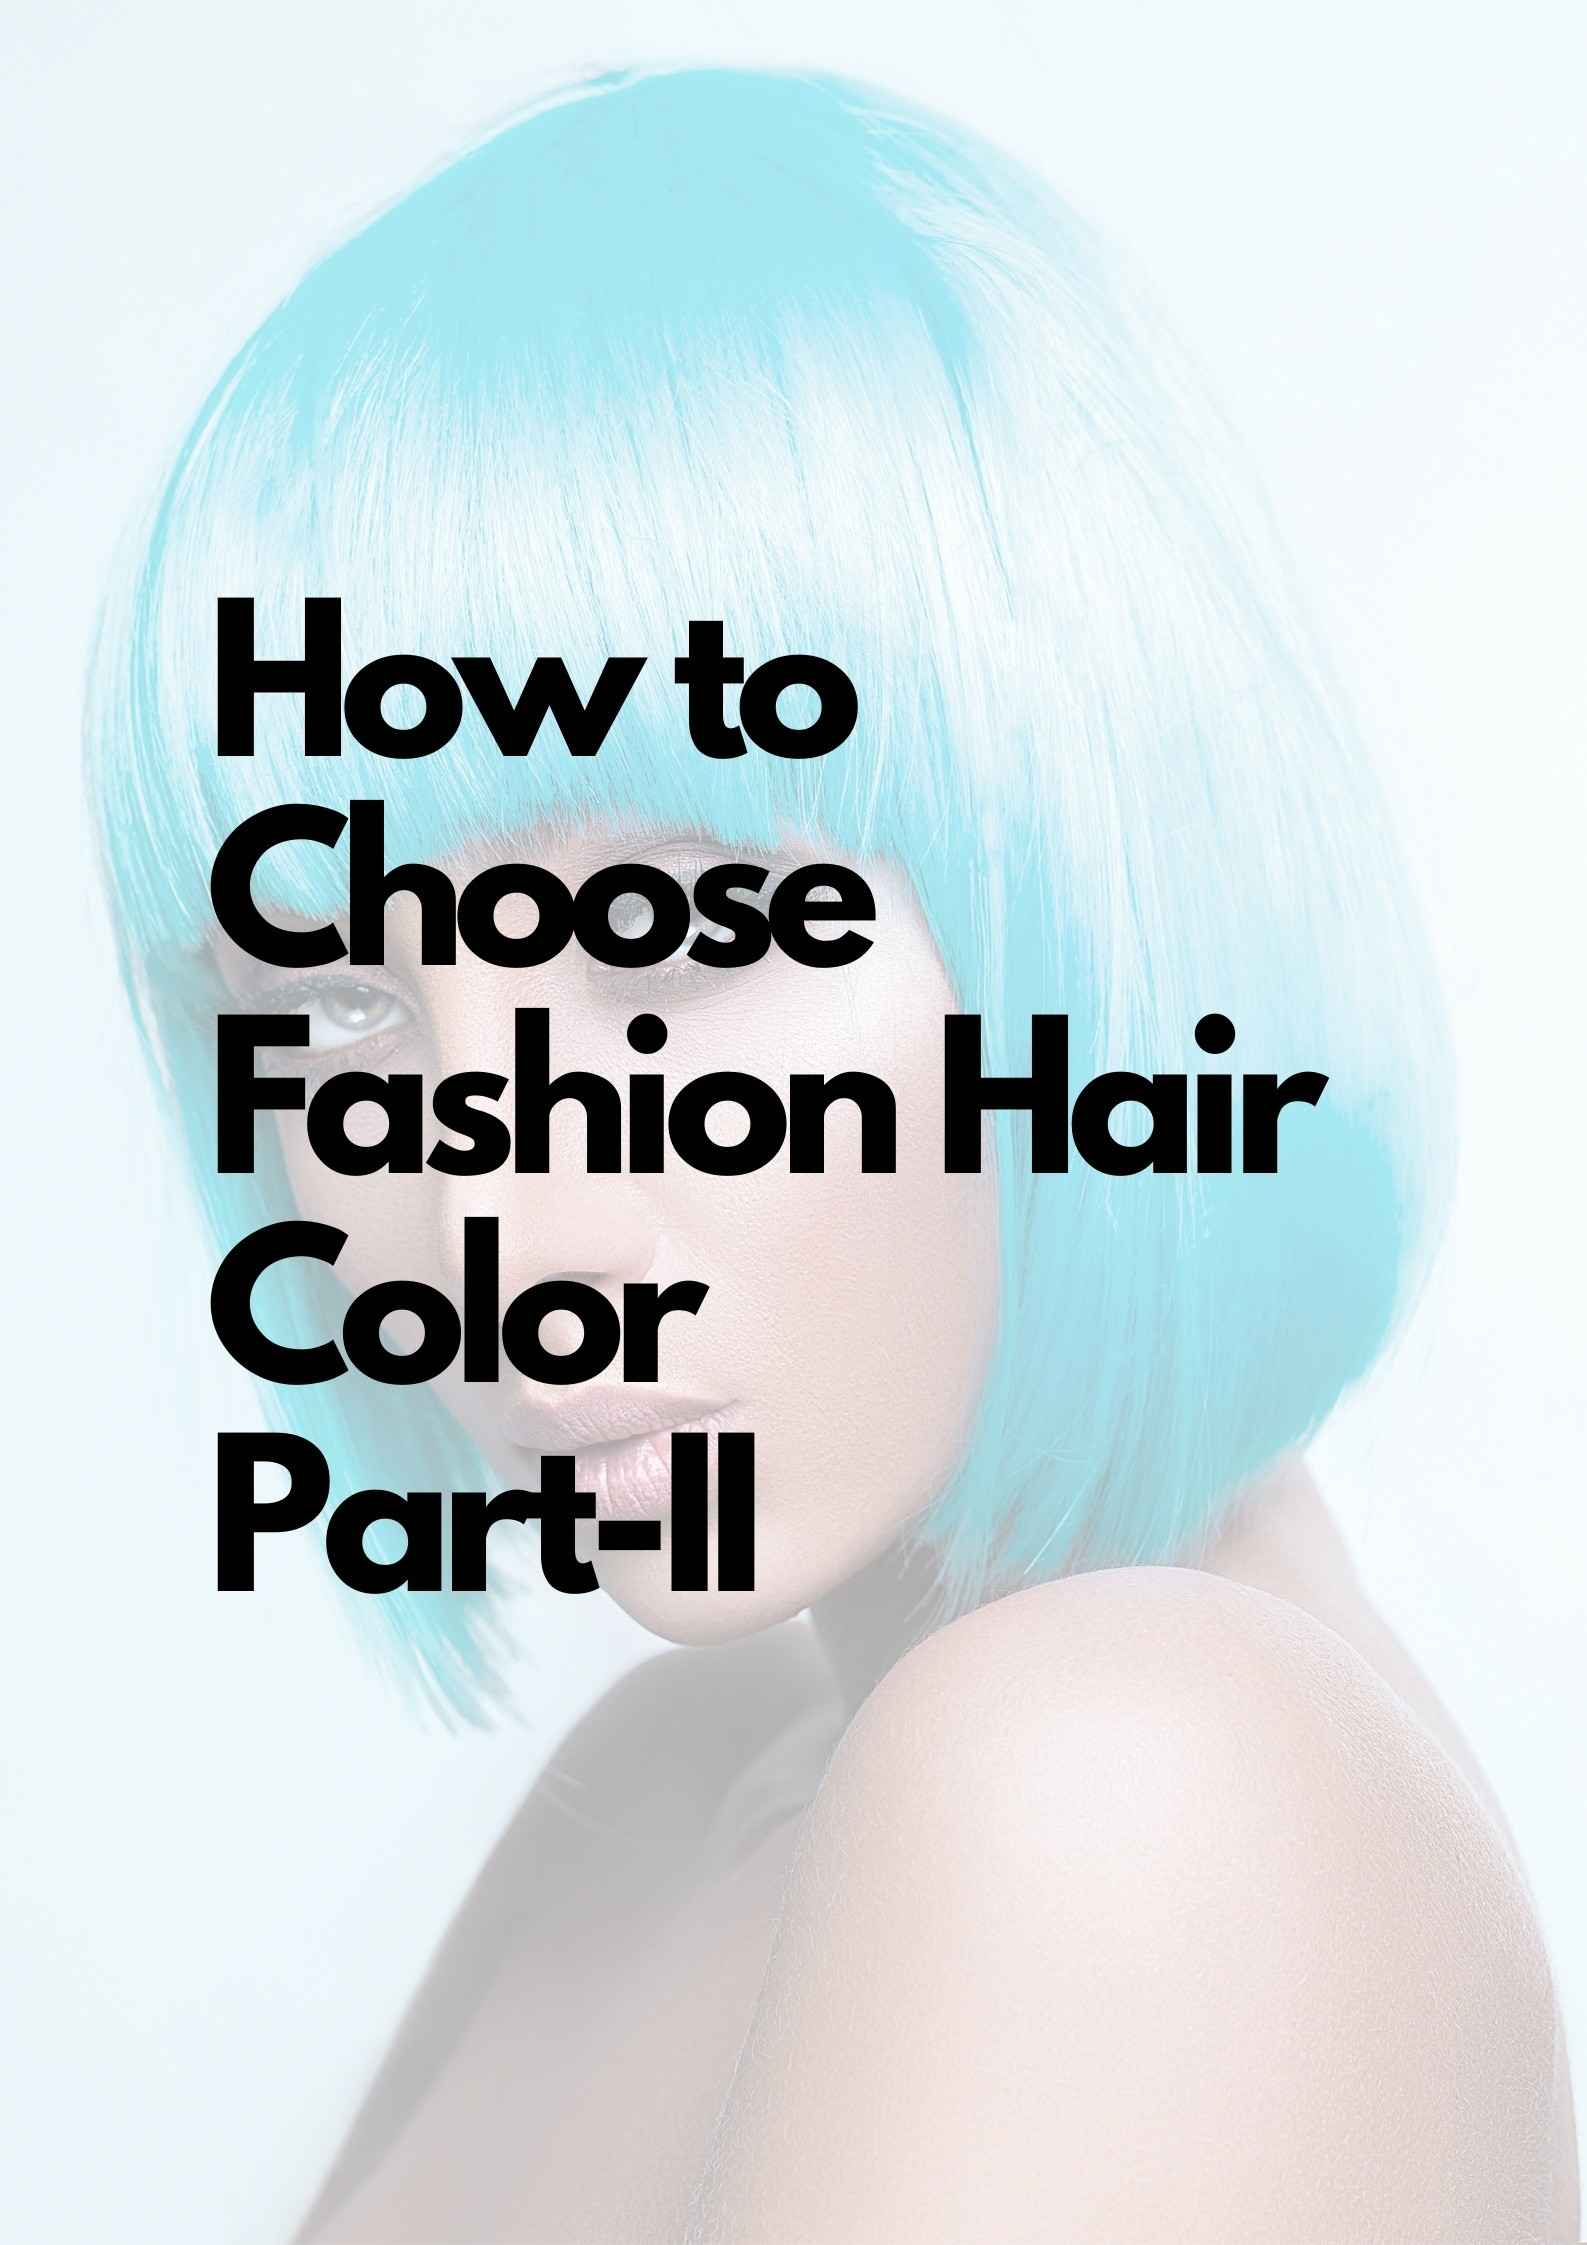 How to Choose Fashion Hair Color